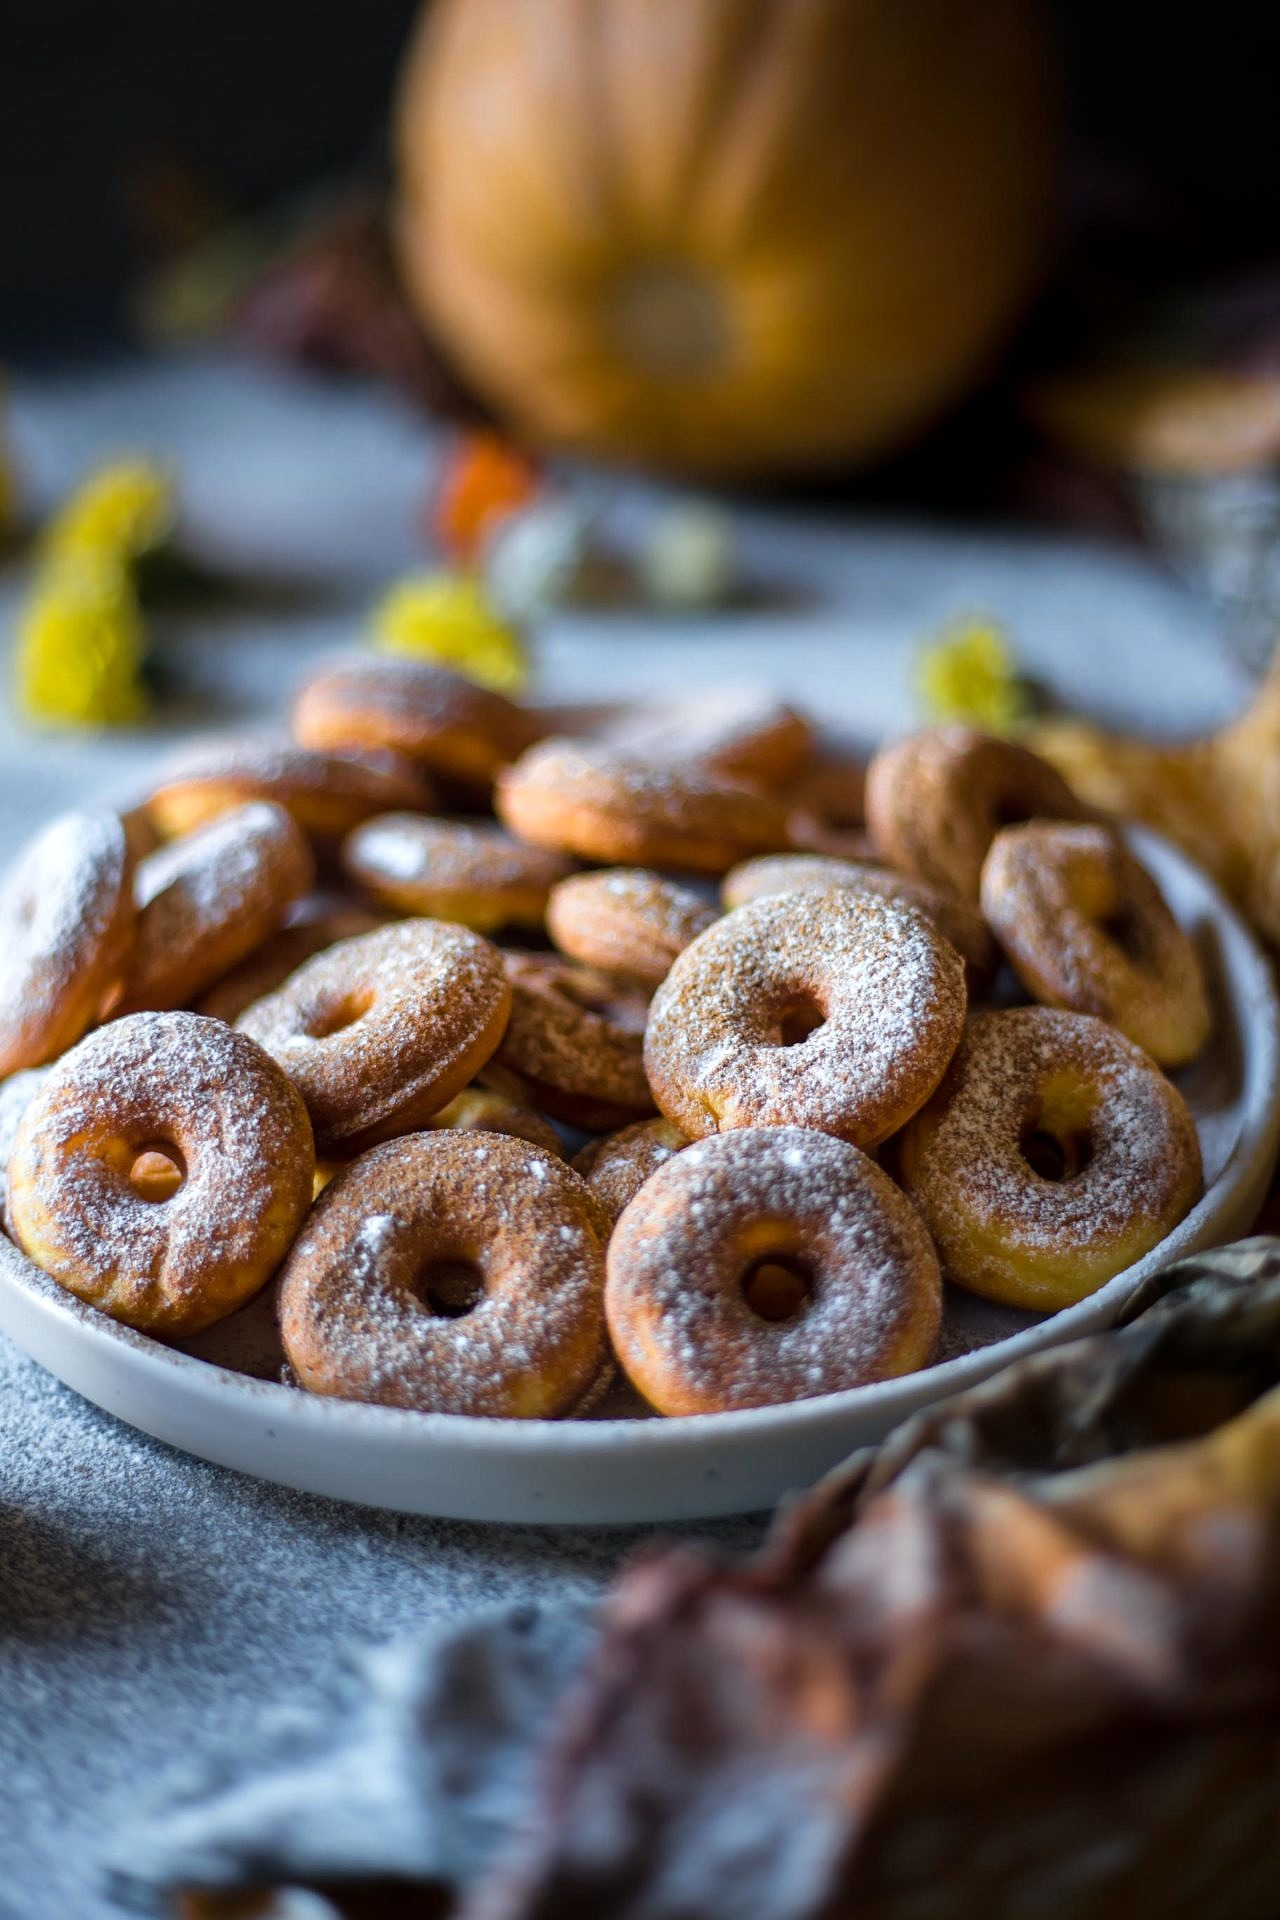 These Low FODMAP pumpkin donuts are super flavorful, rich, perfectly sweetened and very delicious. The autumn flavor is in every bite.